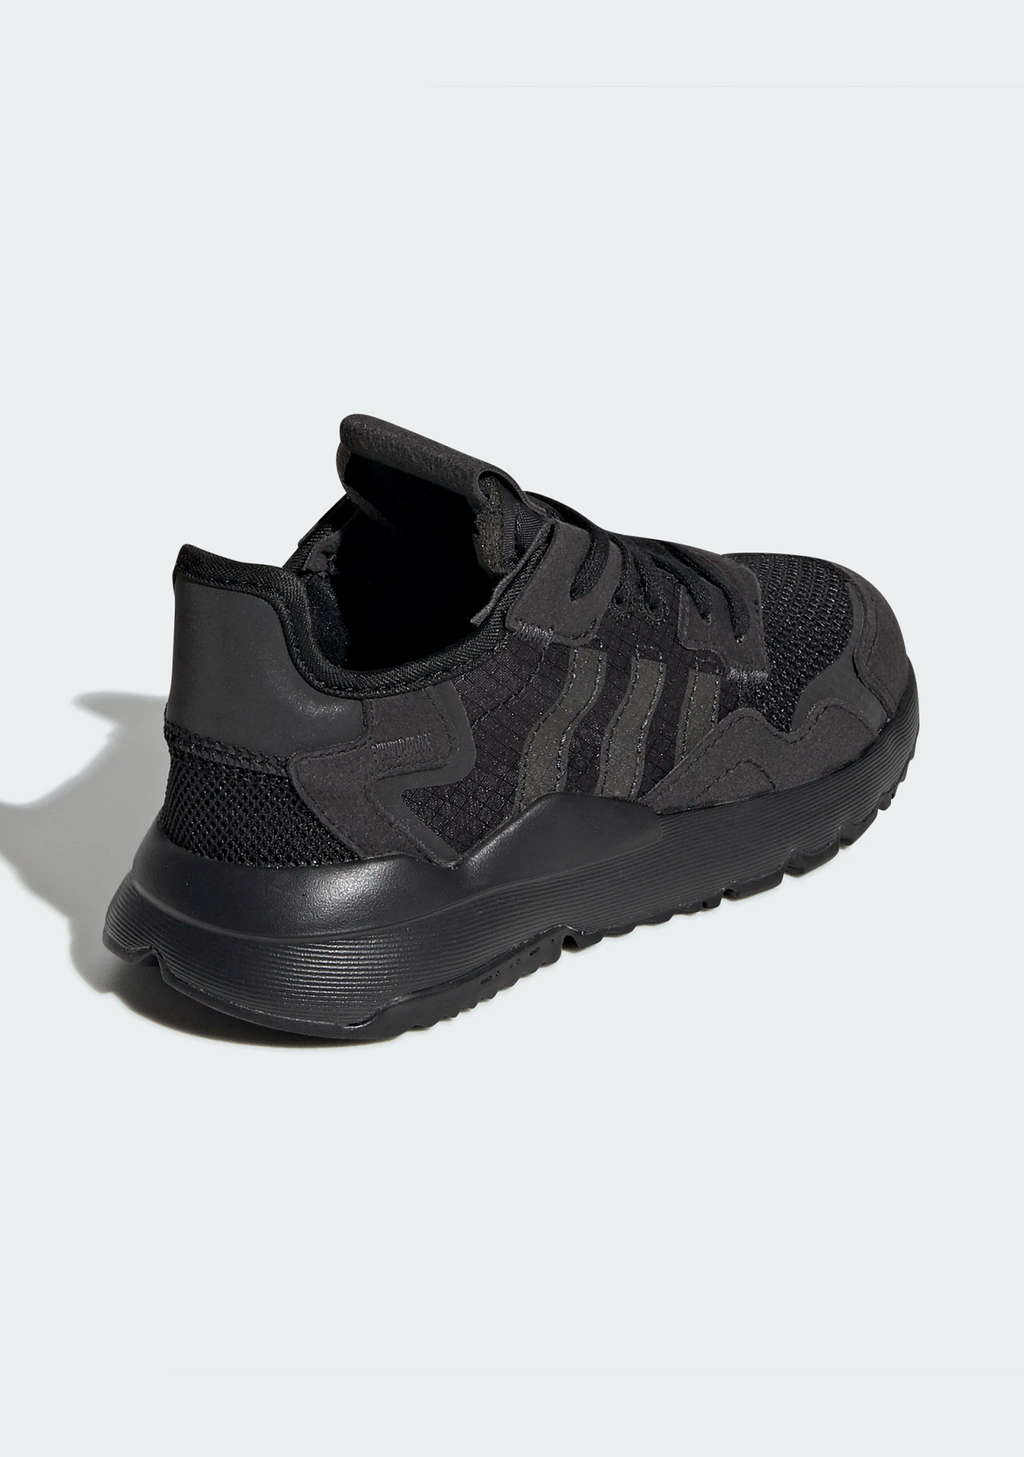 ADIDAS ORIGINALS JUNIOR NITE JOGGER SHOES <br> DB2810